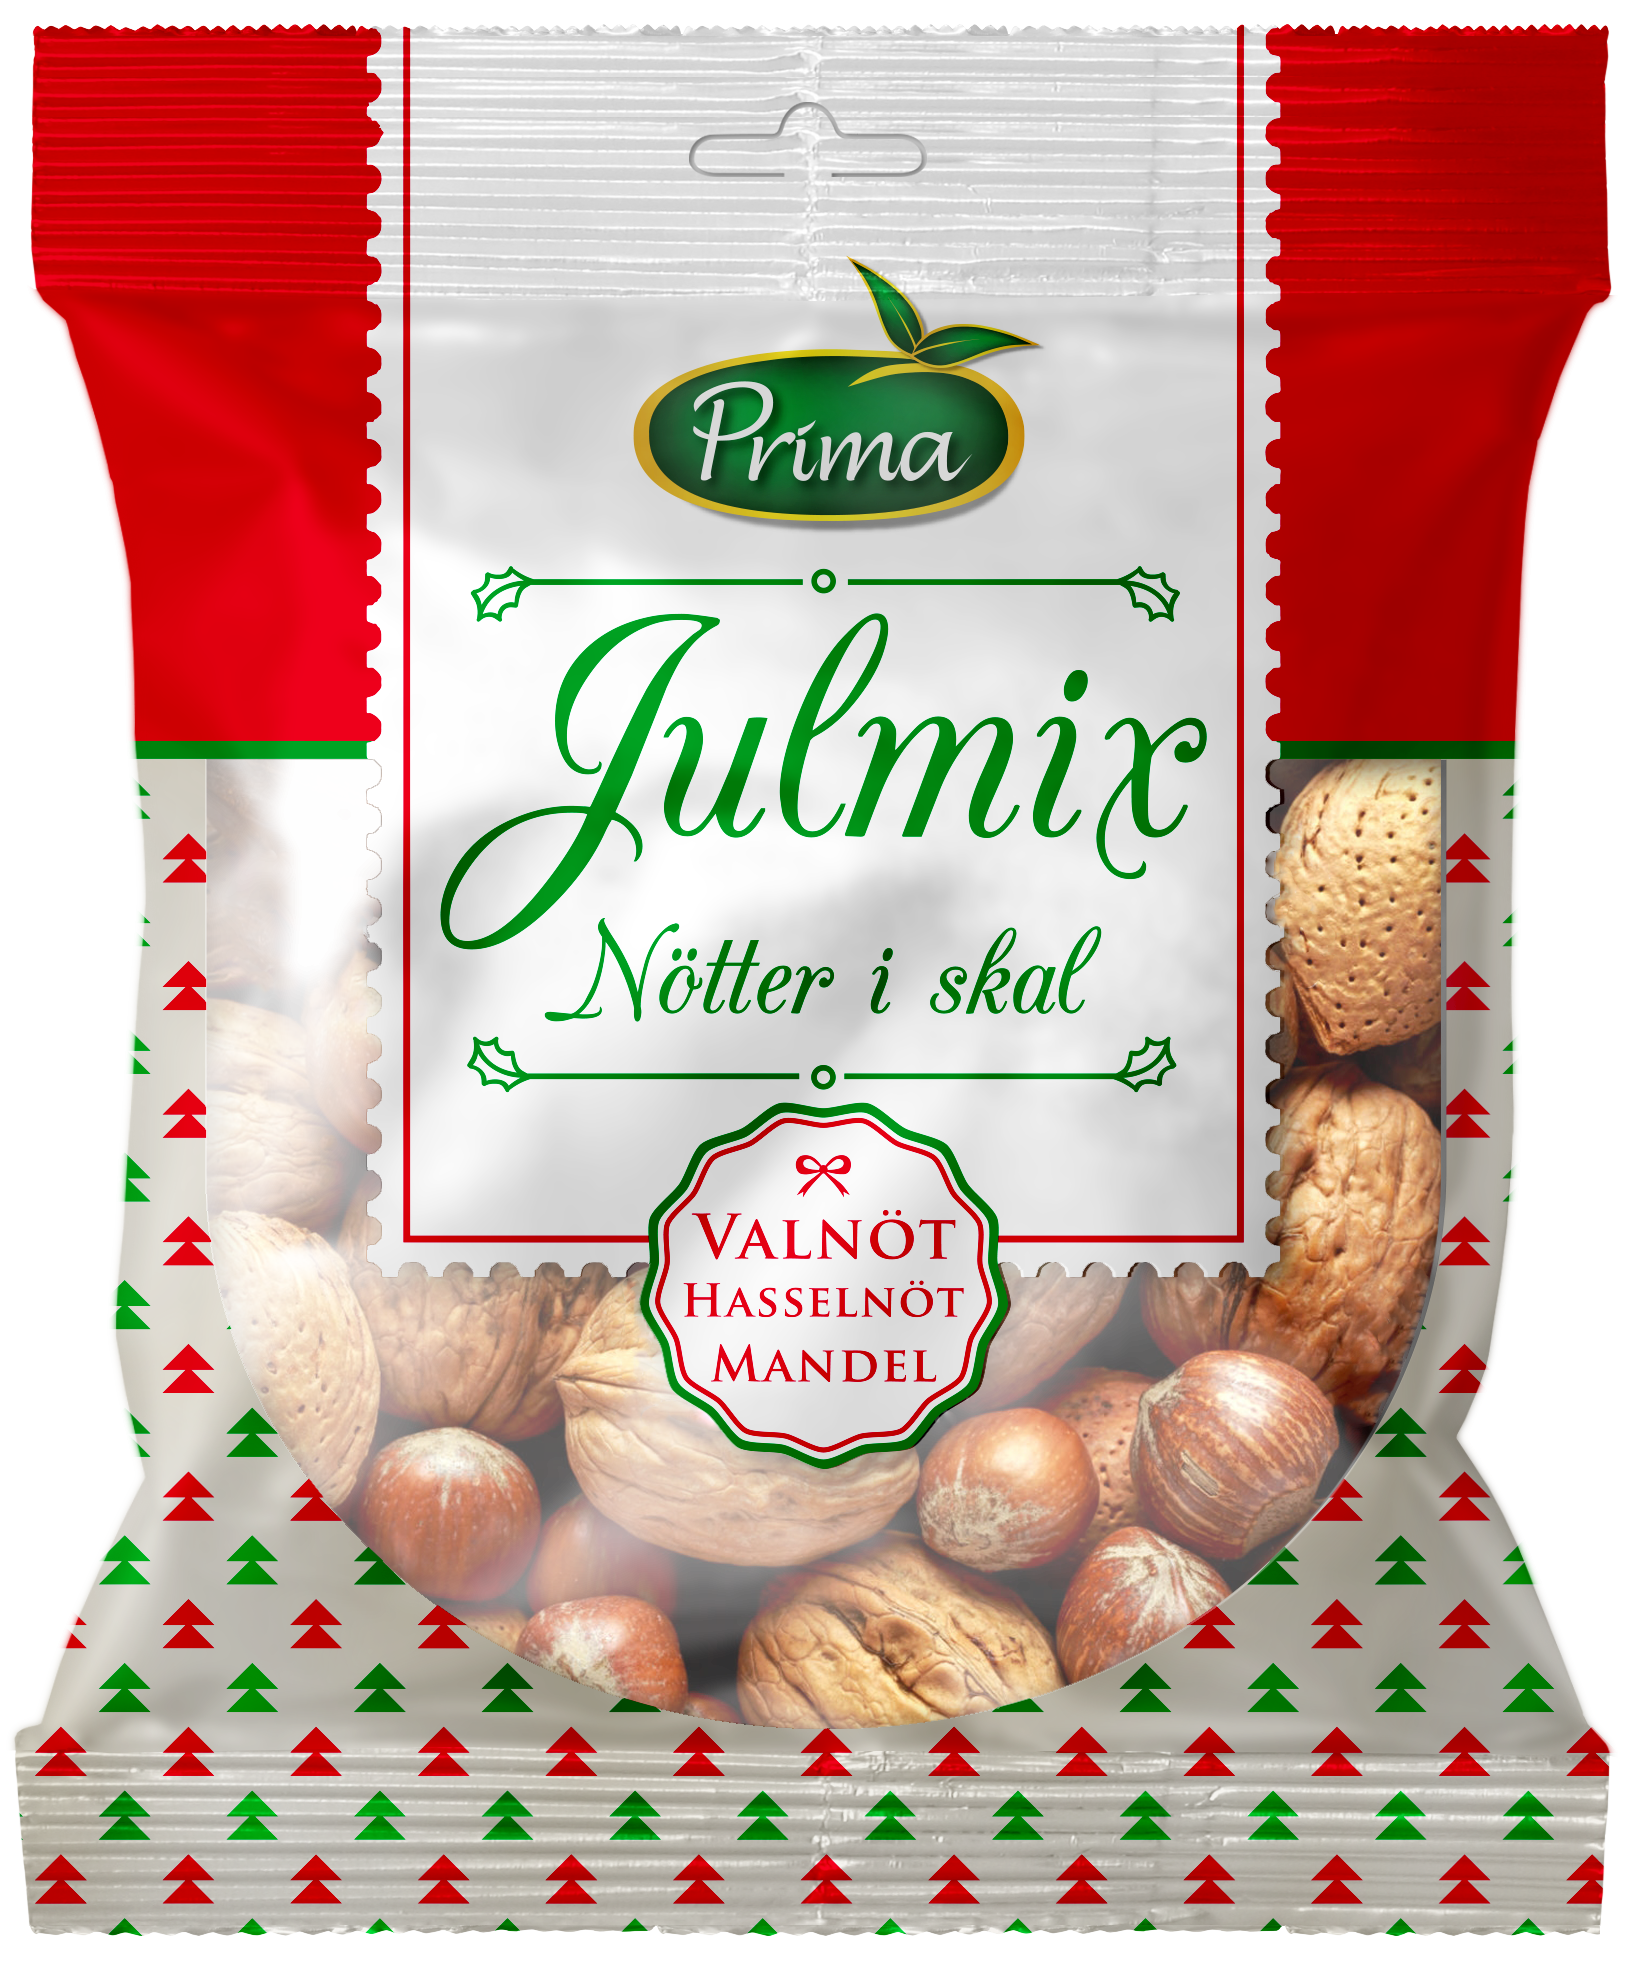 Julmix (Christmas Mix) - Delightful Christmas mix of nuts with shell. Walnut, Hazelnut & Almond.Ingredients: Walnut, Hazelnut, AlmondNutritional value per 100gEnergy 646 kcal / 2677 kJFat 58g, of which saturated fat 4.6 gCarbohydrates 12.6g, of which sugars 4.5gProtein 16gFiber 7.4gSalt 0g